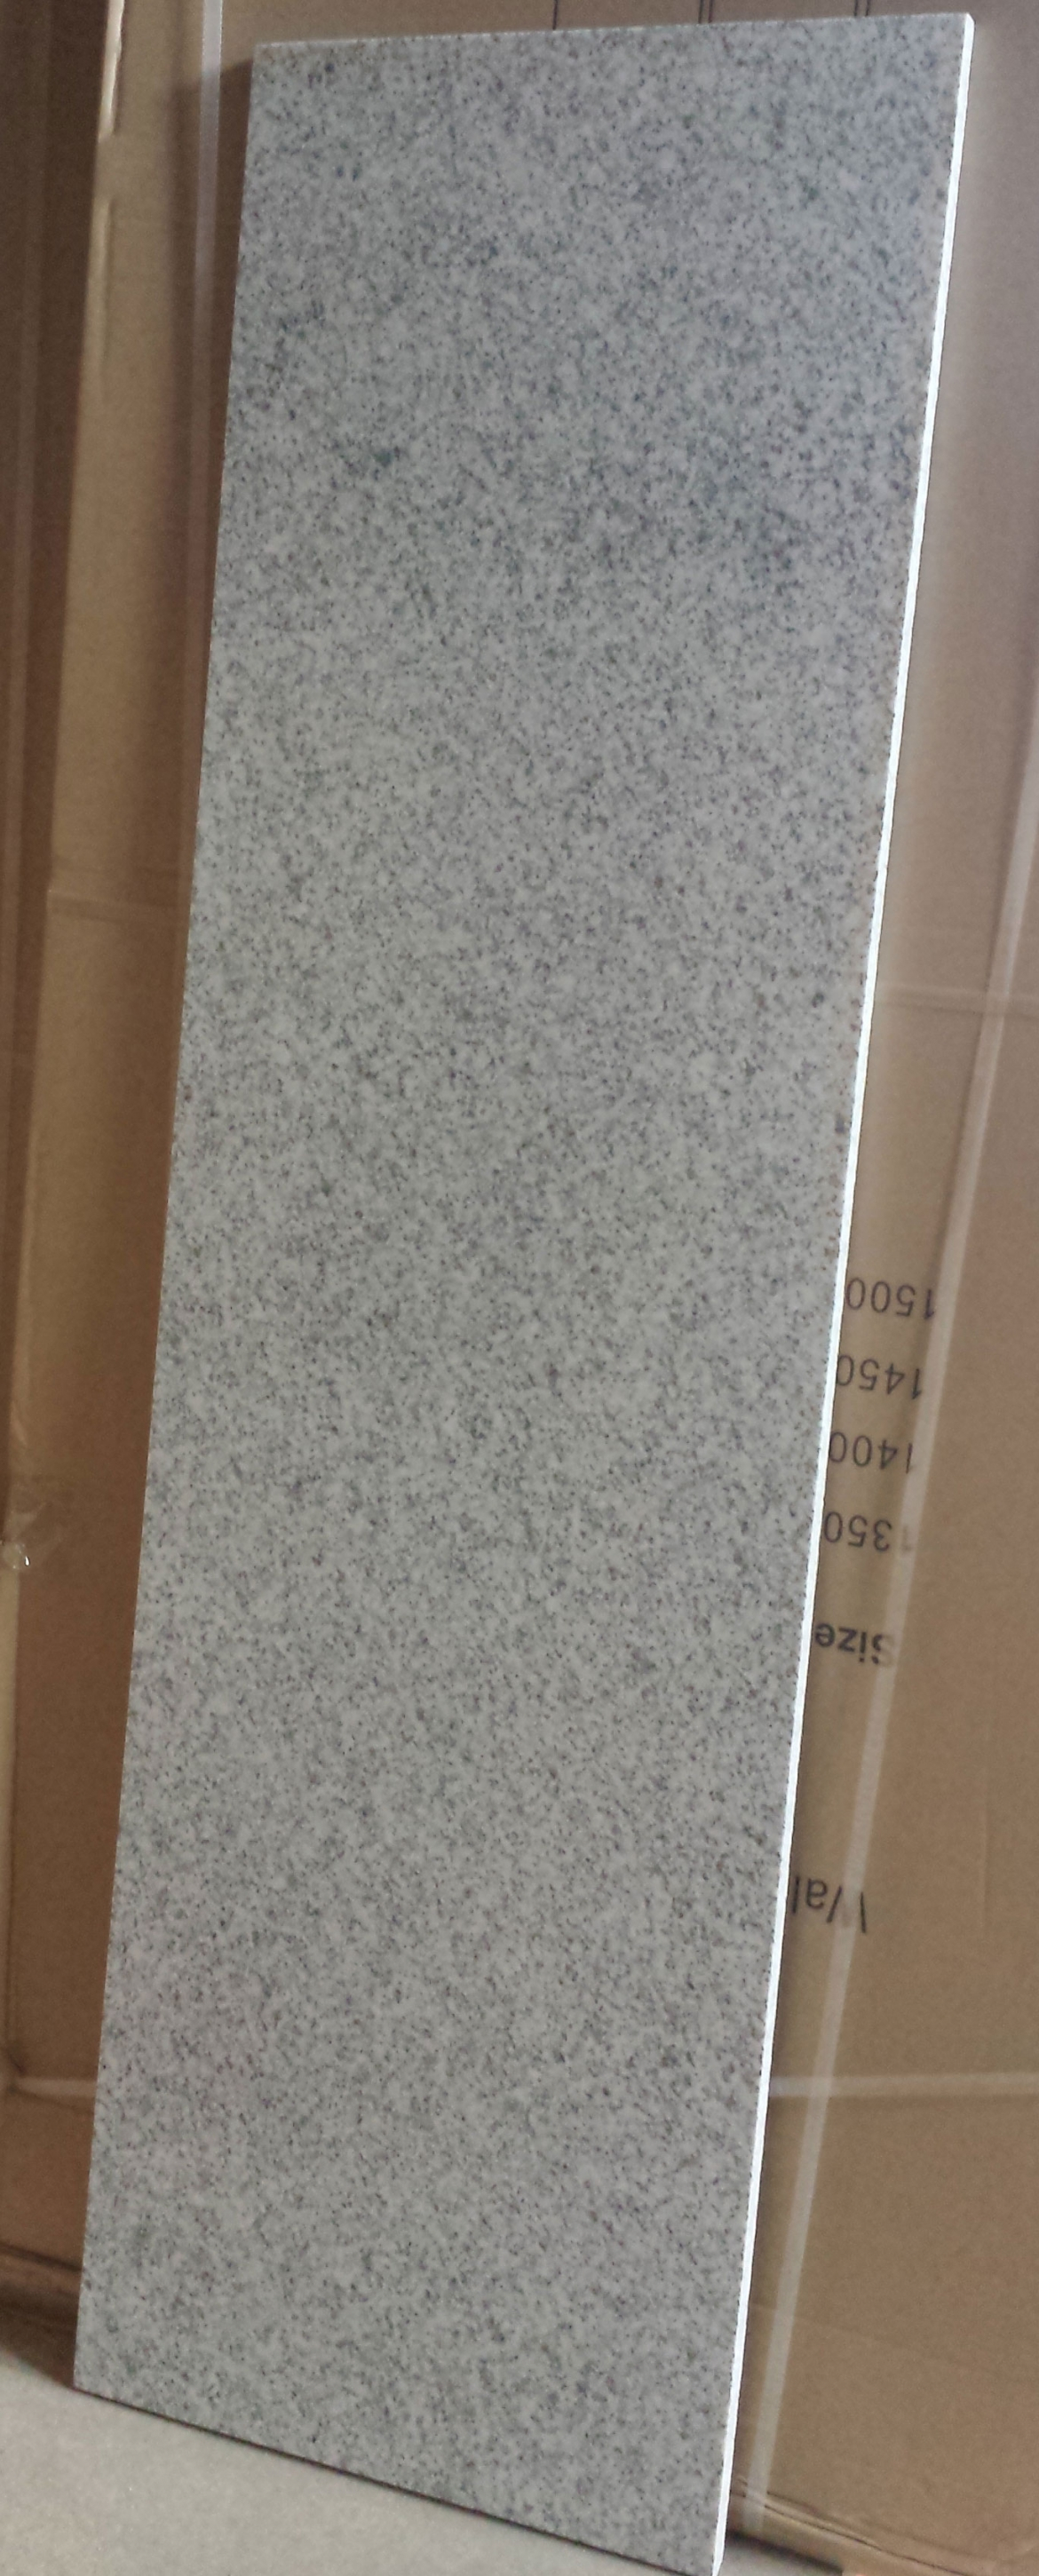 Black/White Granite Bench top for bathroom vanity [1400×470 mm]